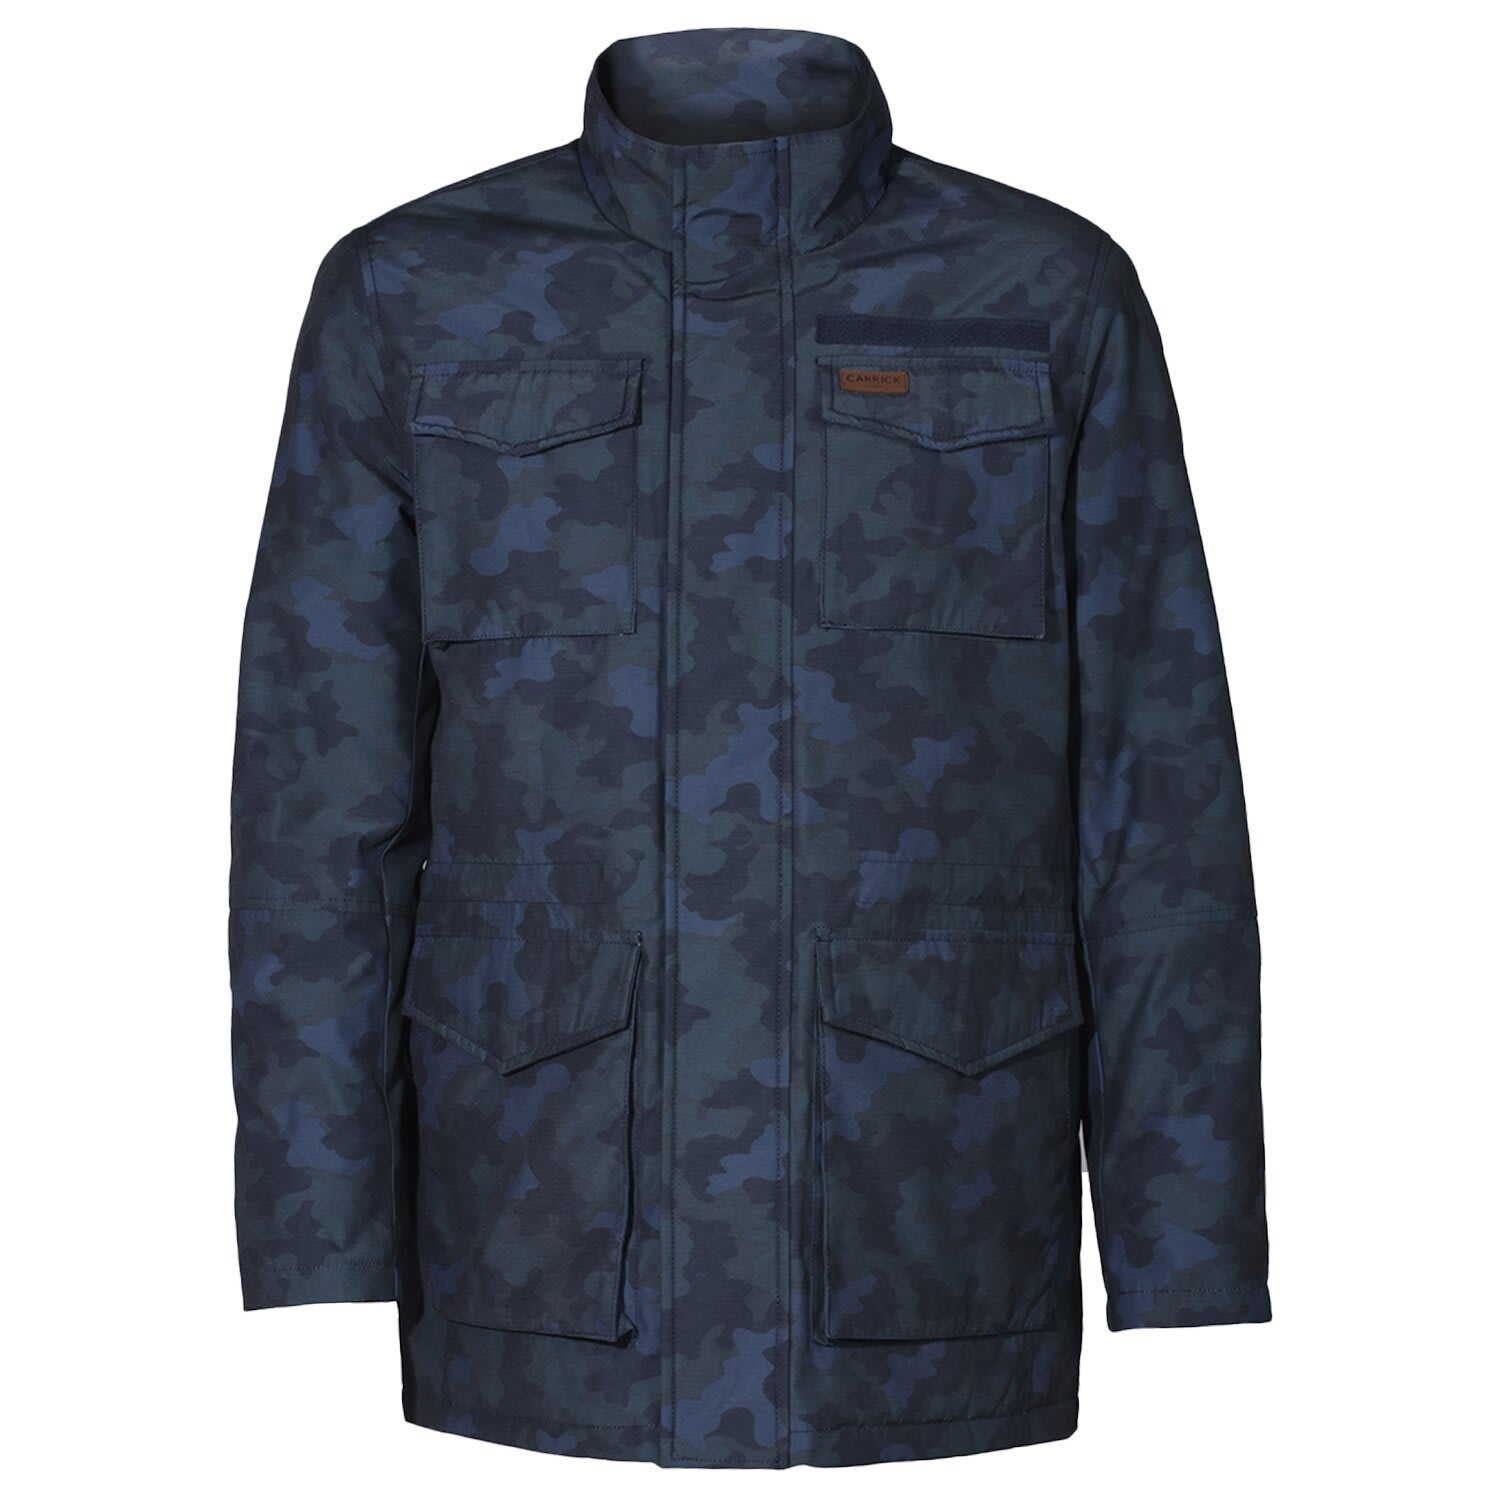 Hi-Tec Men's Addo Jacket